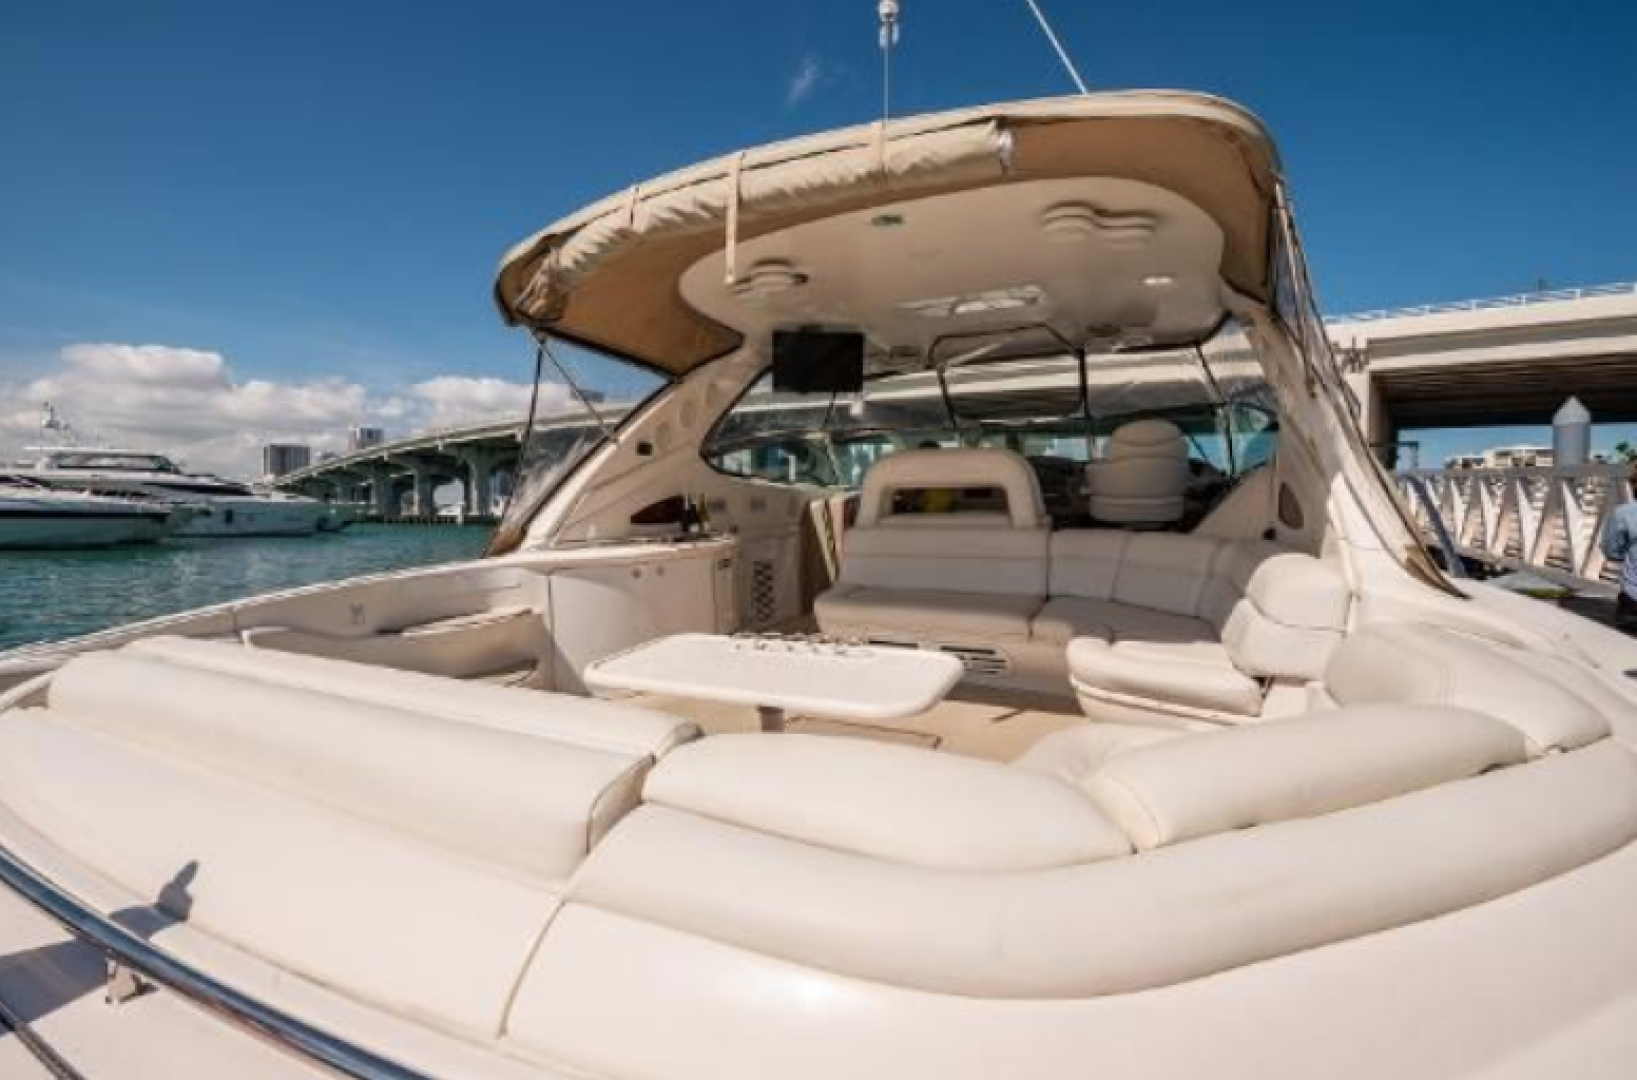 Sea Ray-540 Sundancer 2000-Bettsy Miami-Florida-United States-1562149 | Thumbnail